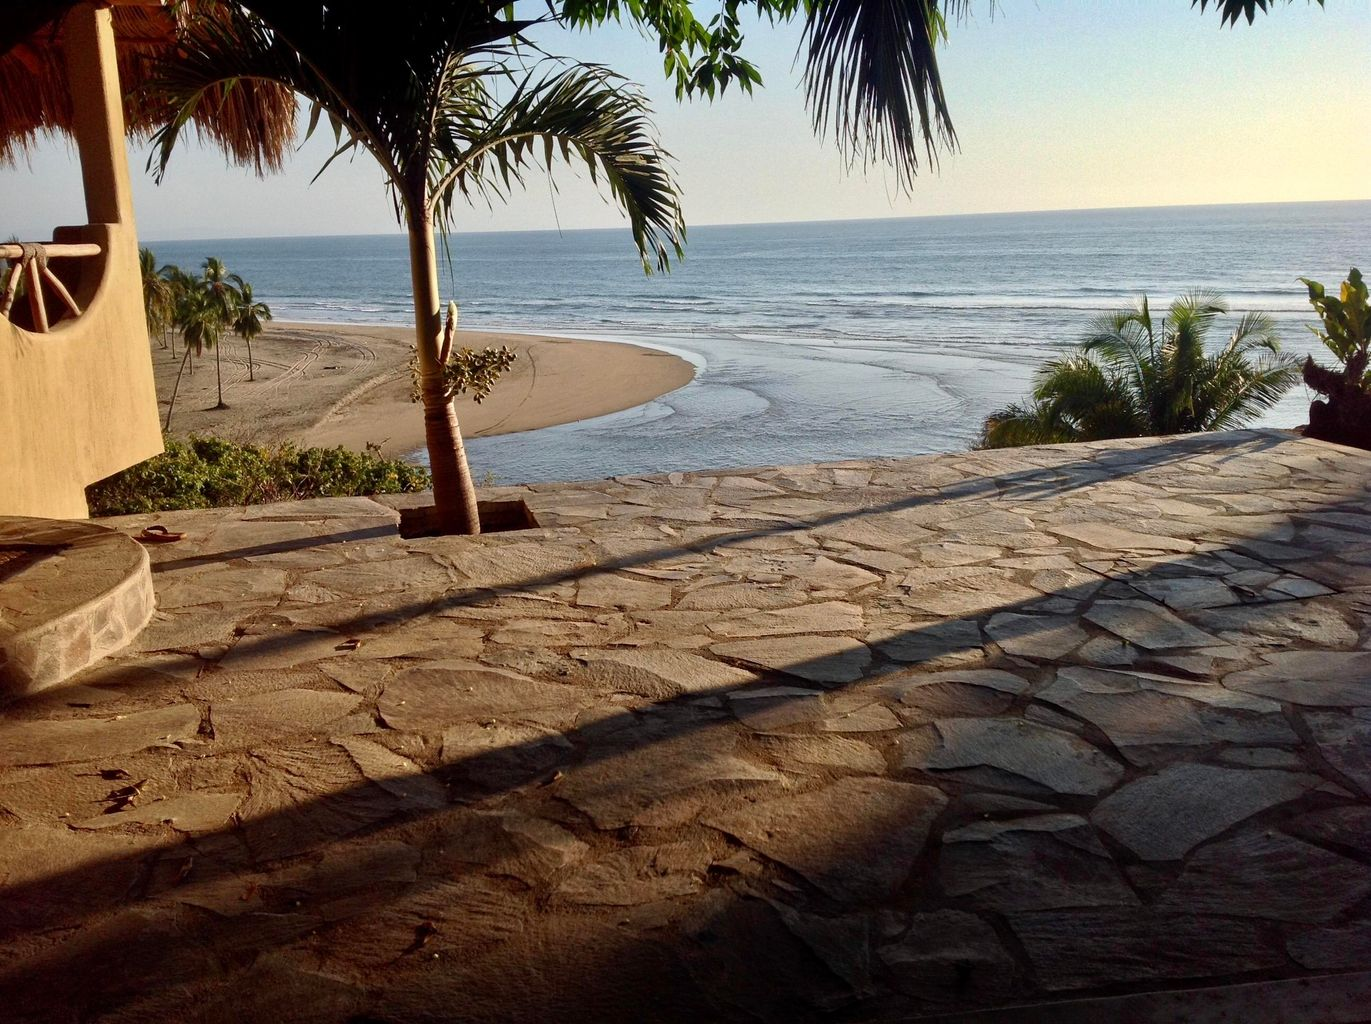 Outdoor patio with spectacular view of Playa las Tortugas beach and ocean